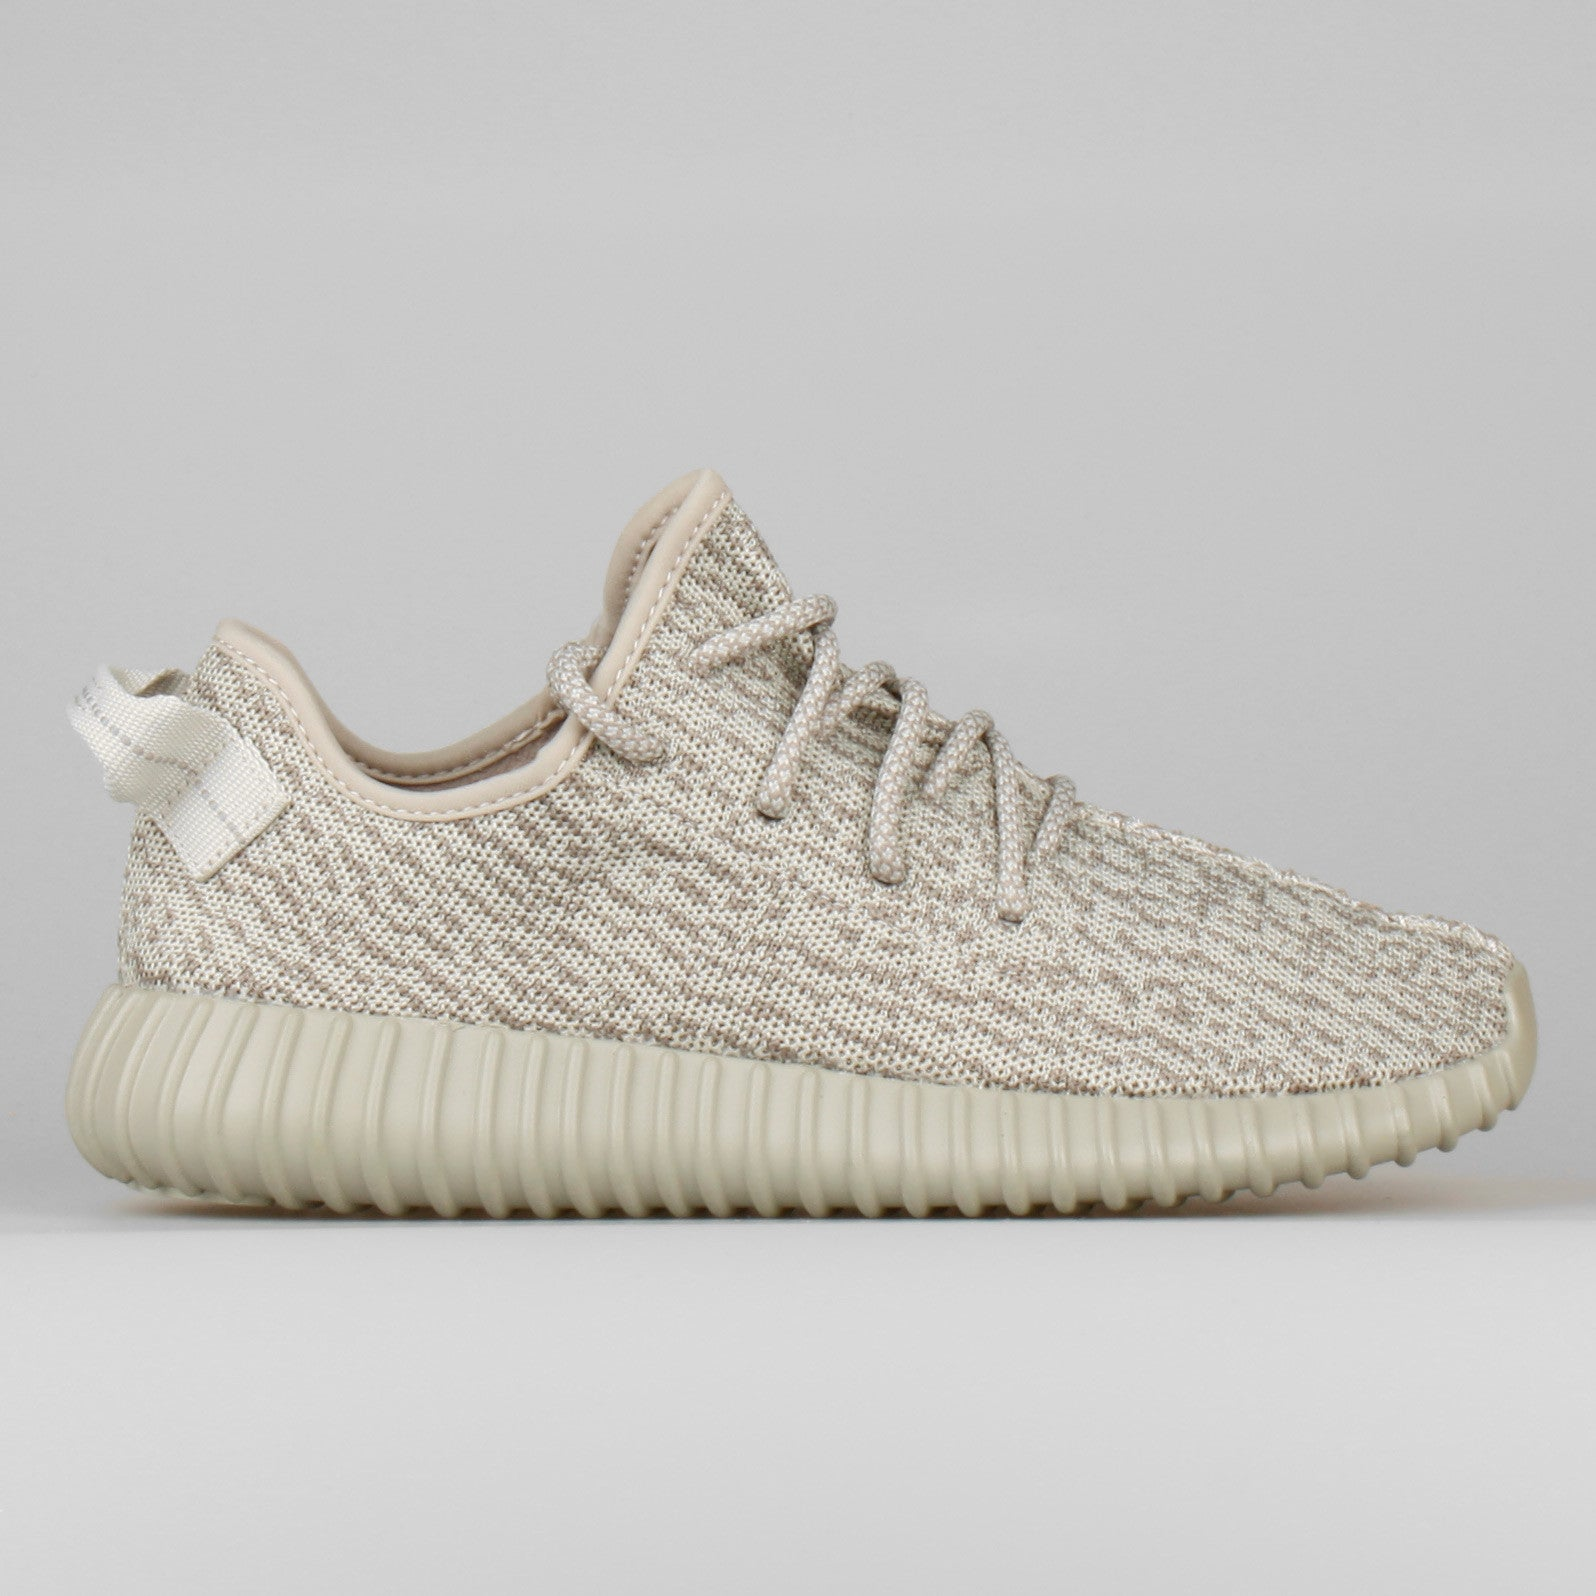 Authentic Adidas Yeezy Boost 350 'Oxford Tan' AQ2661 Sz 12